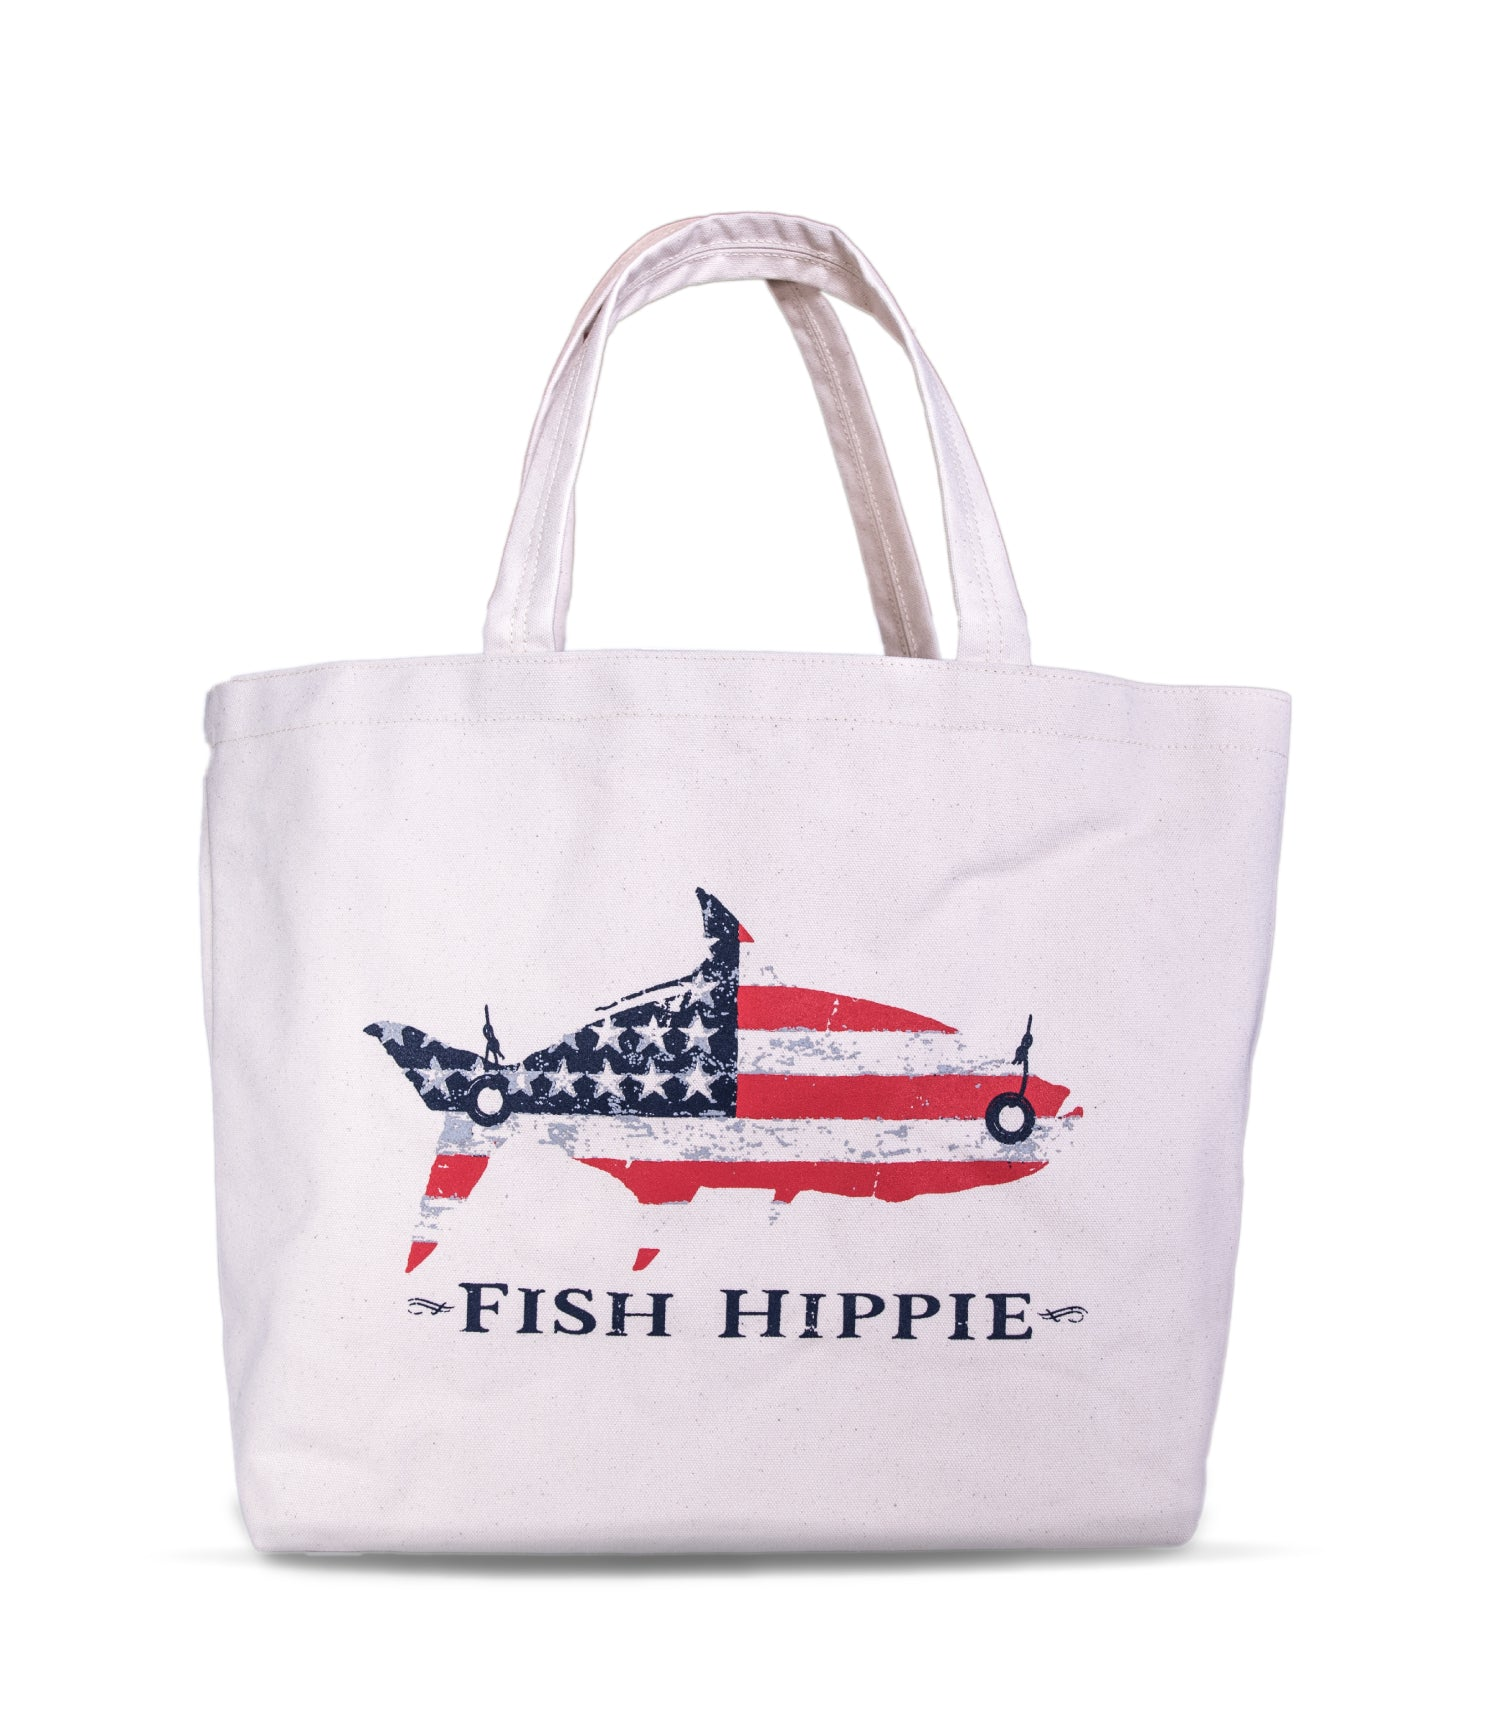 Patriotic Printed Canvas Tote